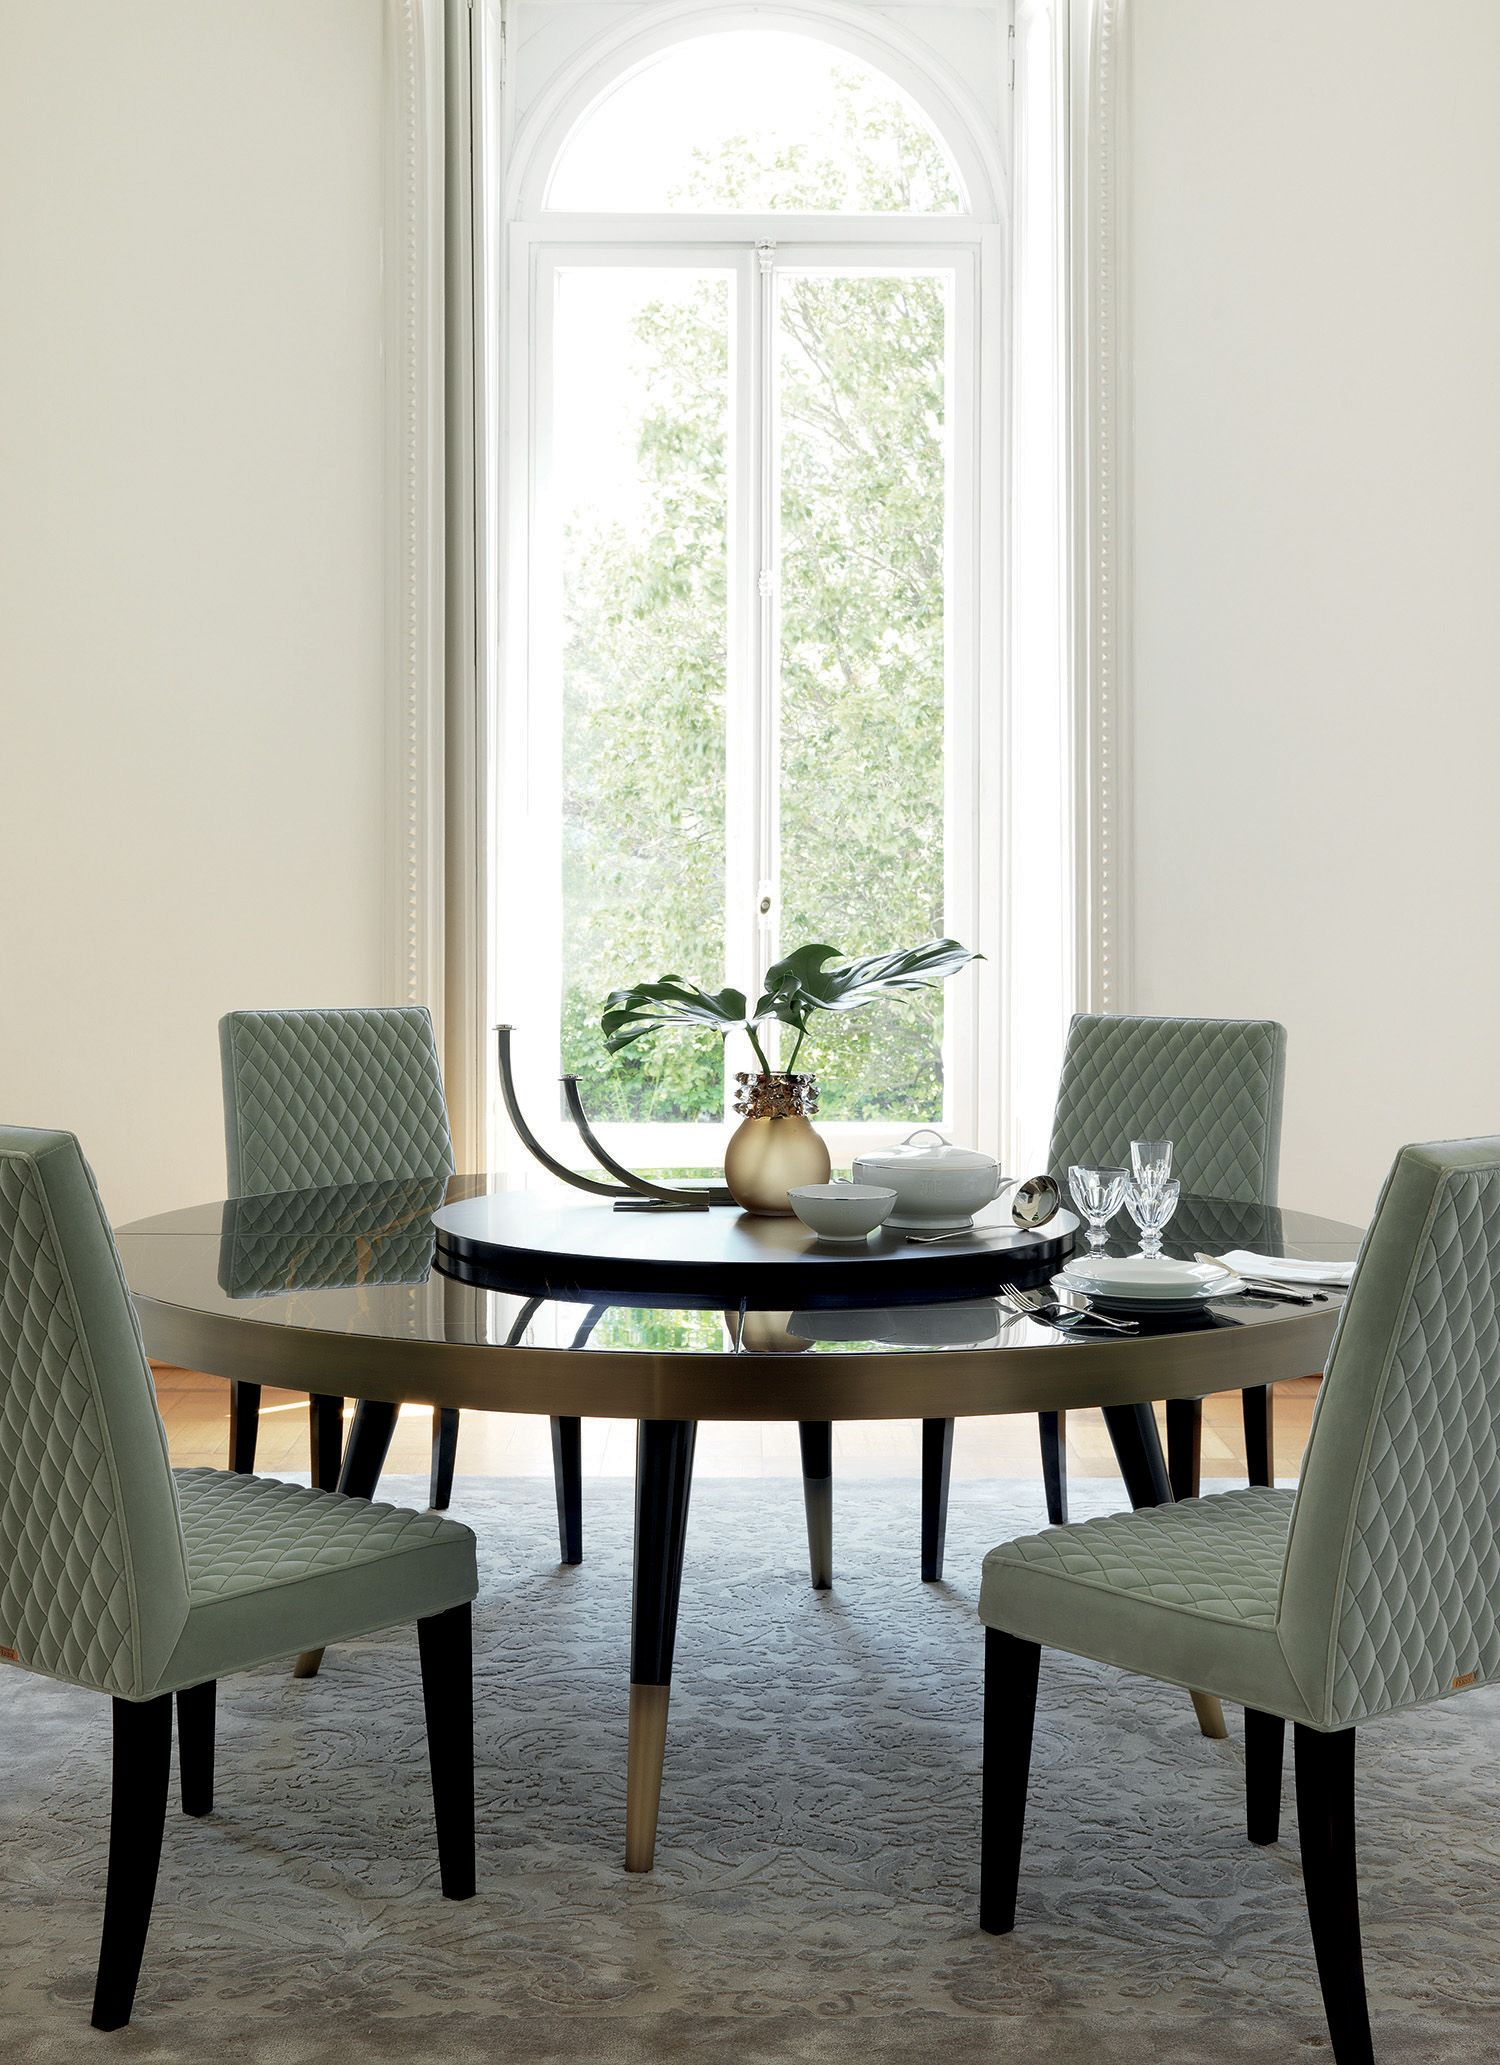 MAYFAIR A Round Dining Table With The Top In Precious Sahara Noir Marble  And An Independent